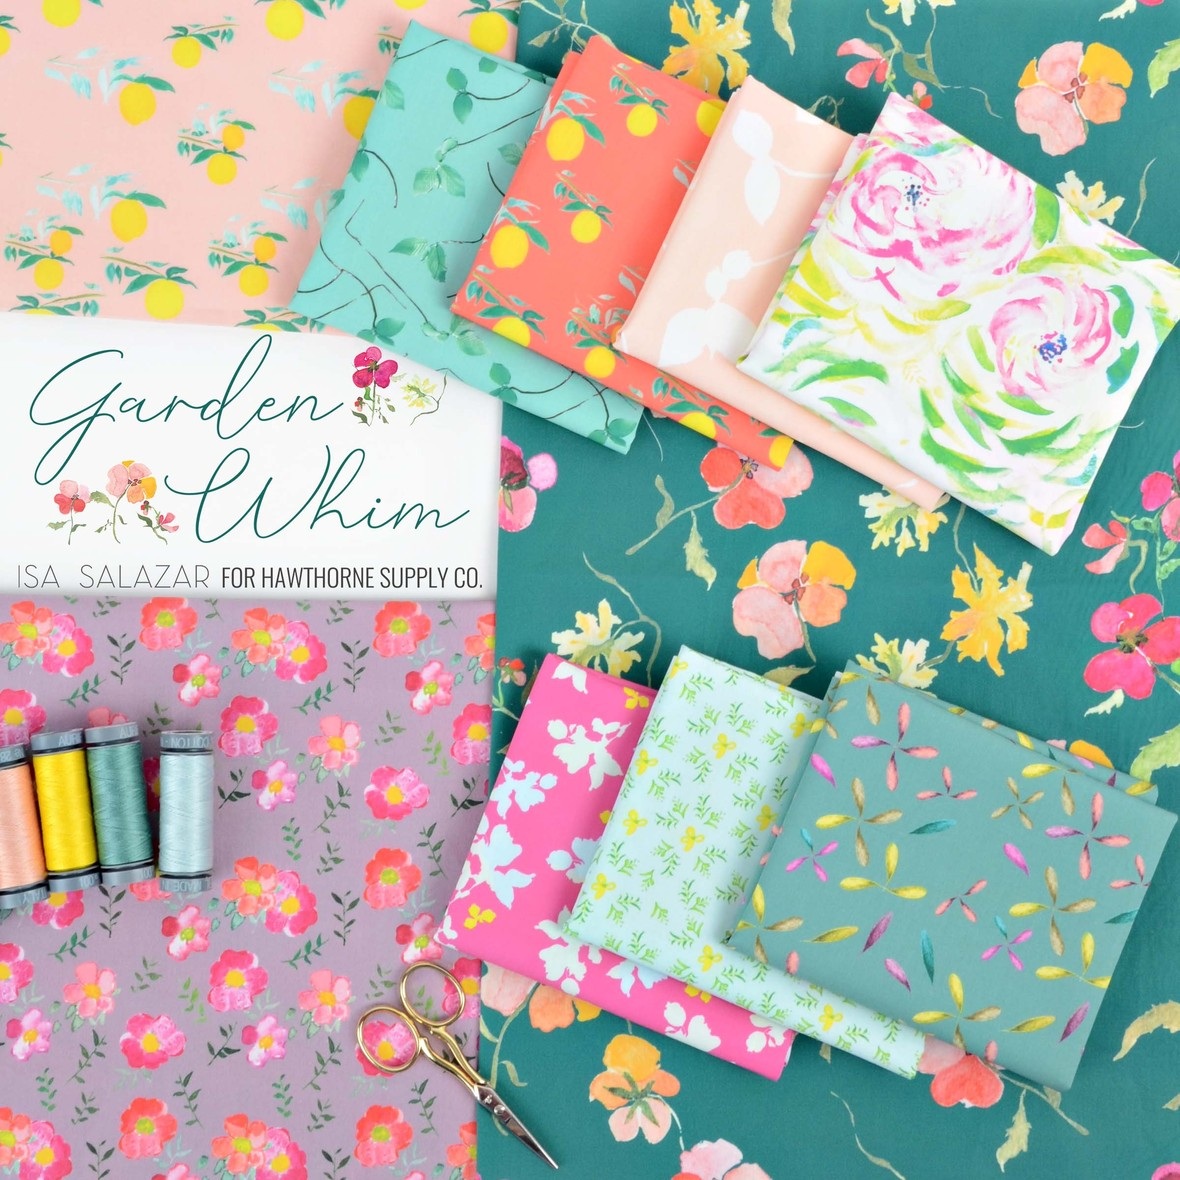 Isa Salazar Garden Whim Fabric at Hawthorne Supply Co